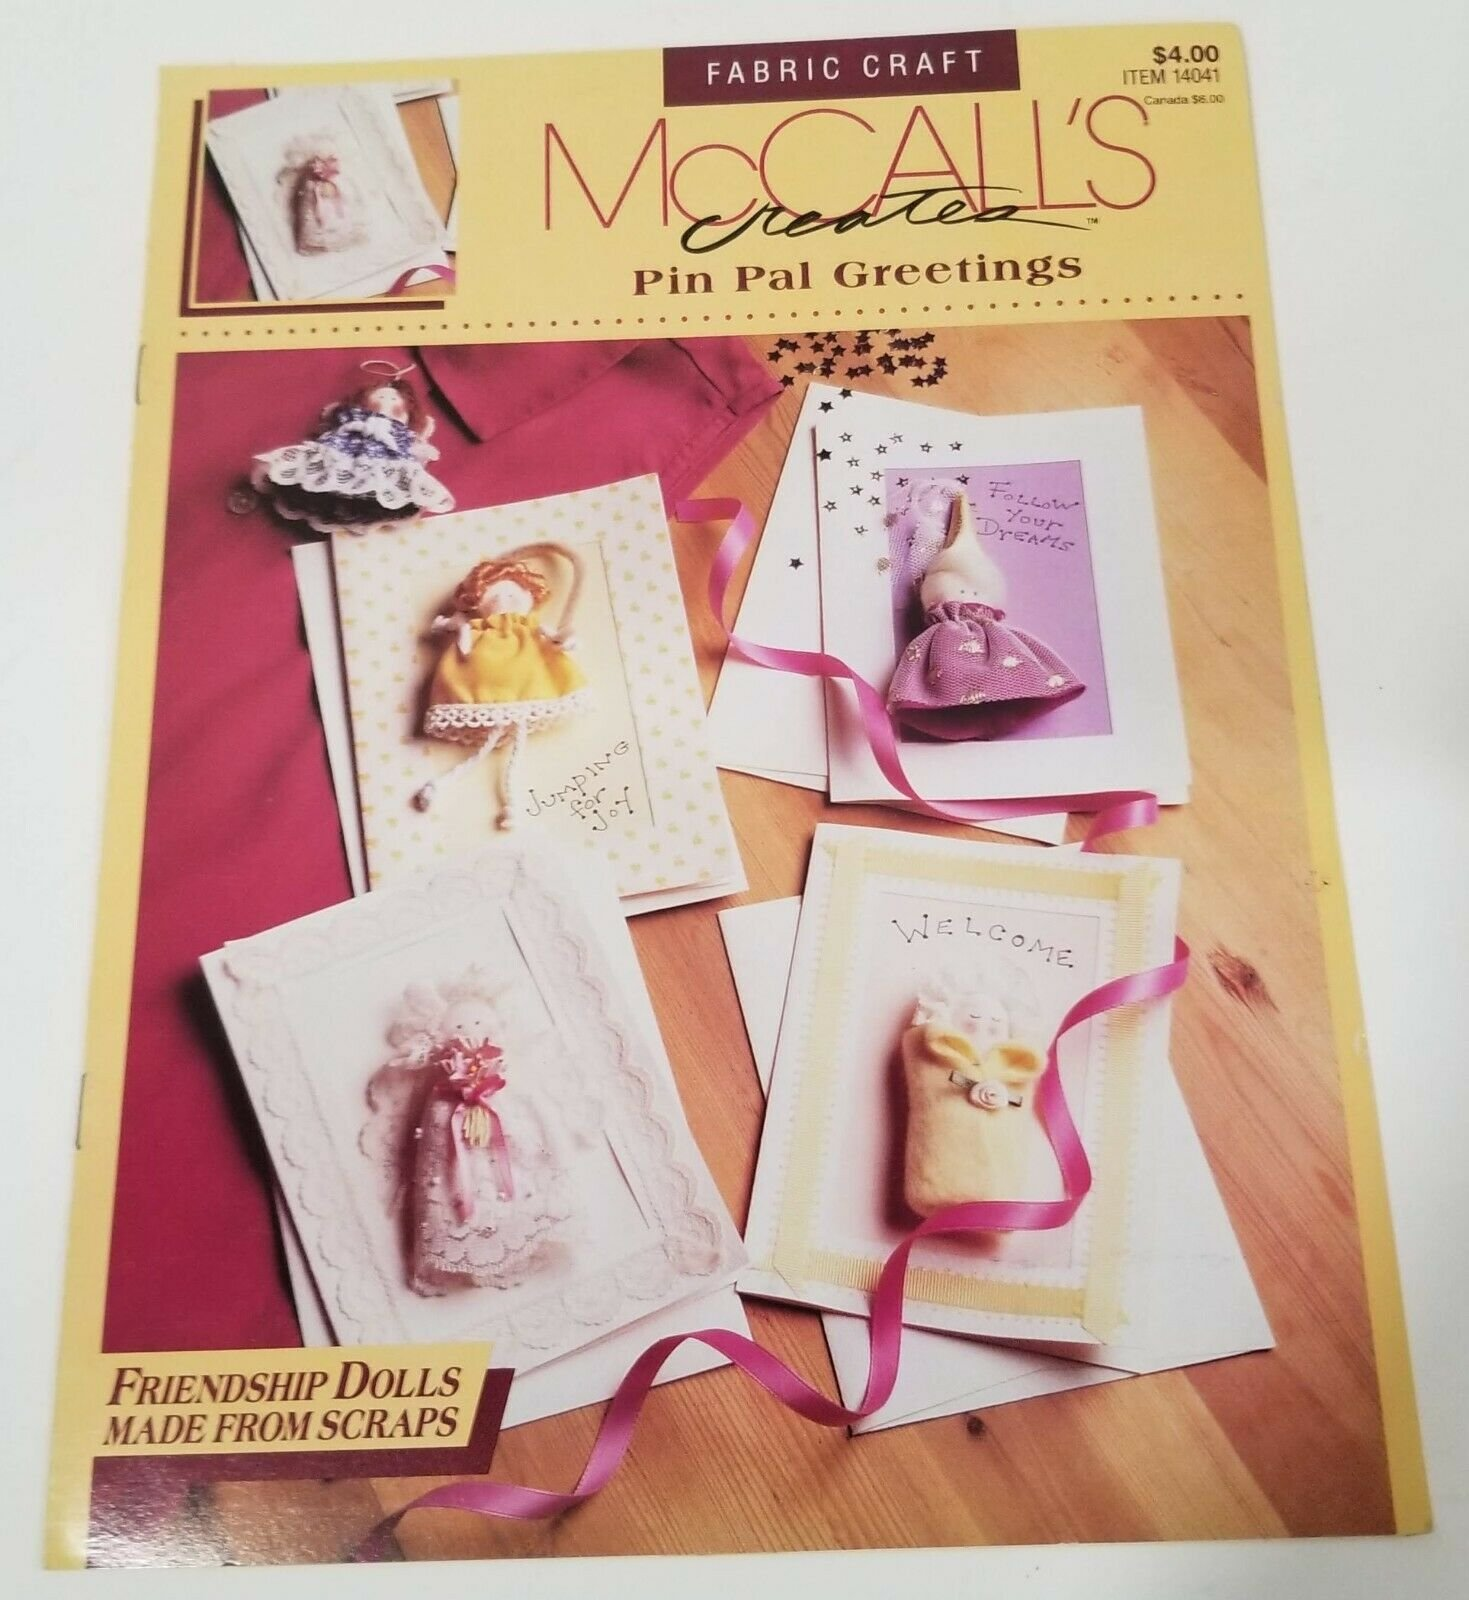 Pin Gal Greetings by McCall's Creates - Friendship Dolls Made from scraps